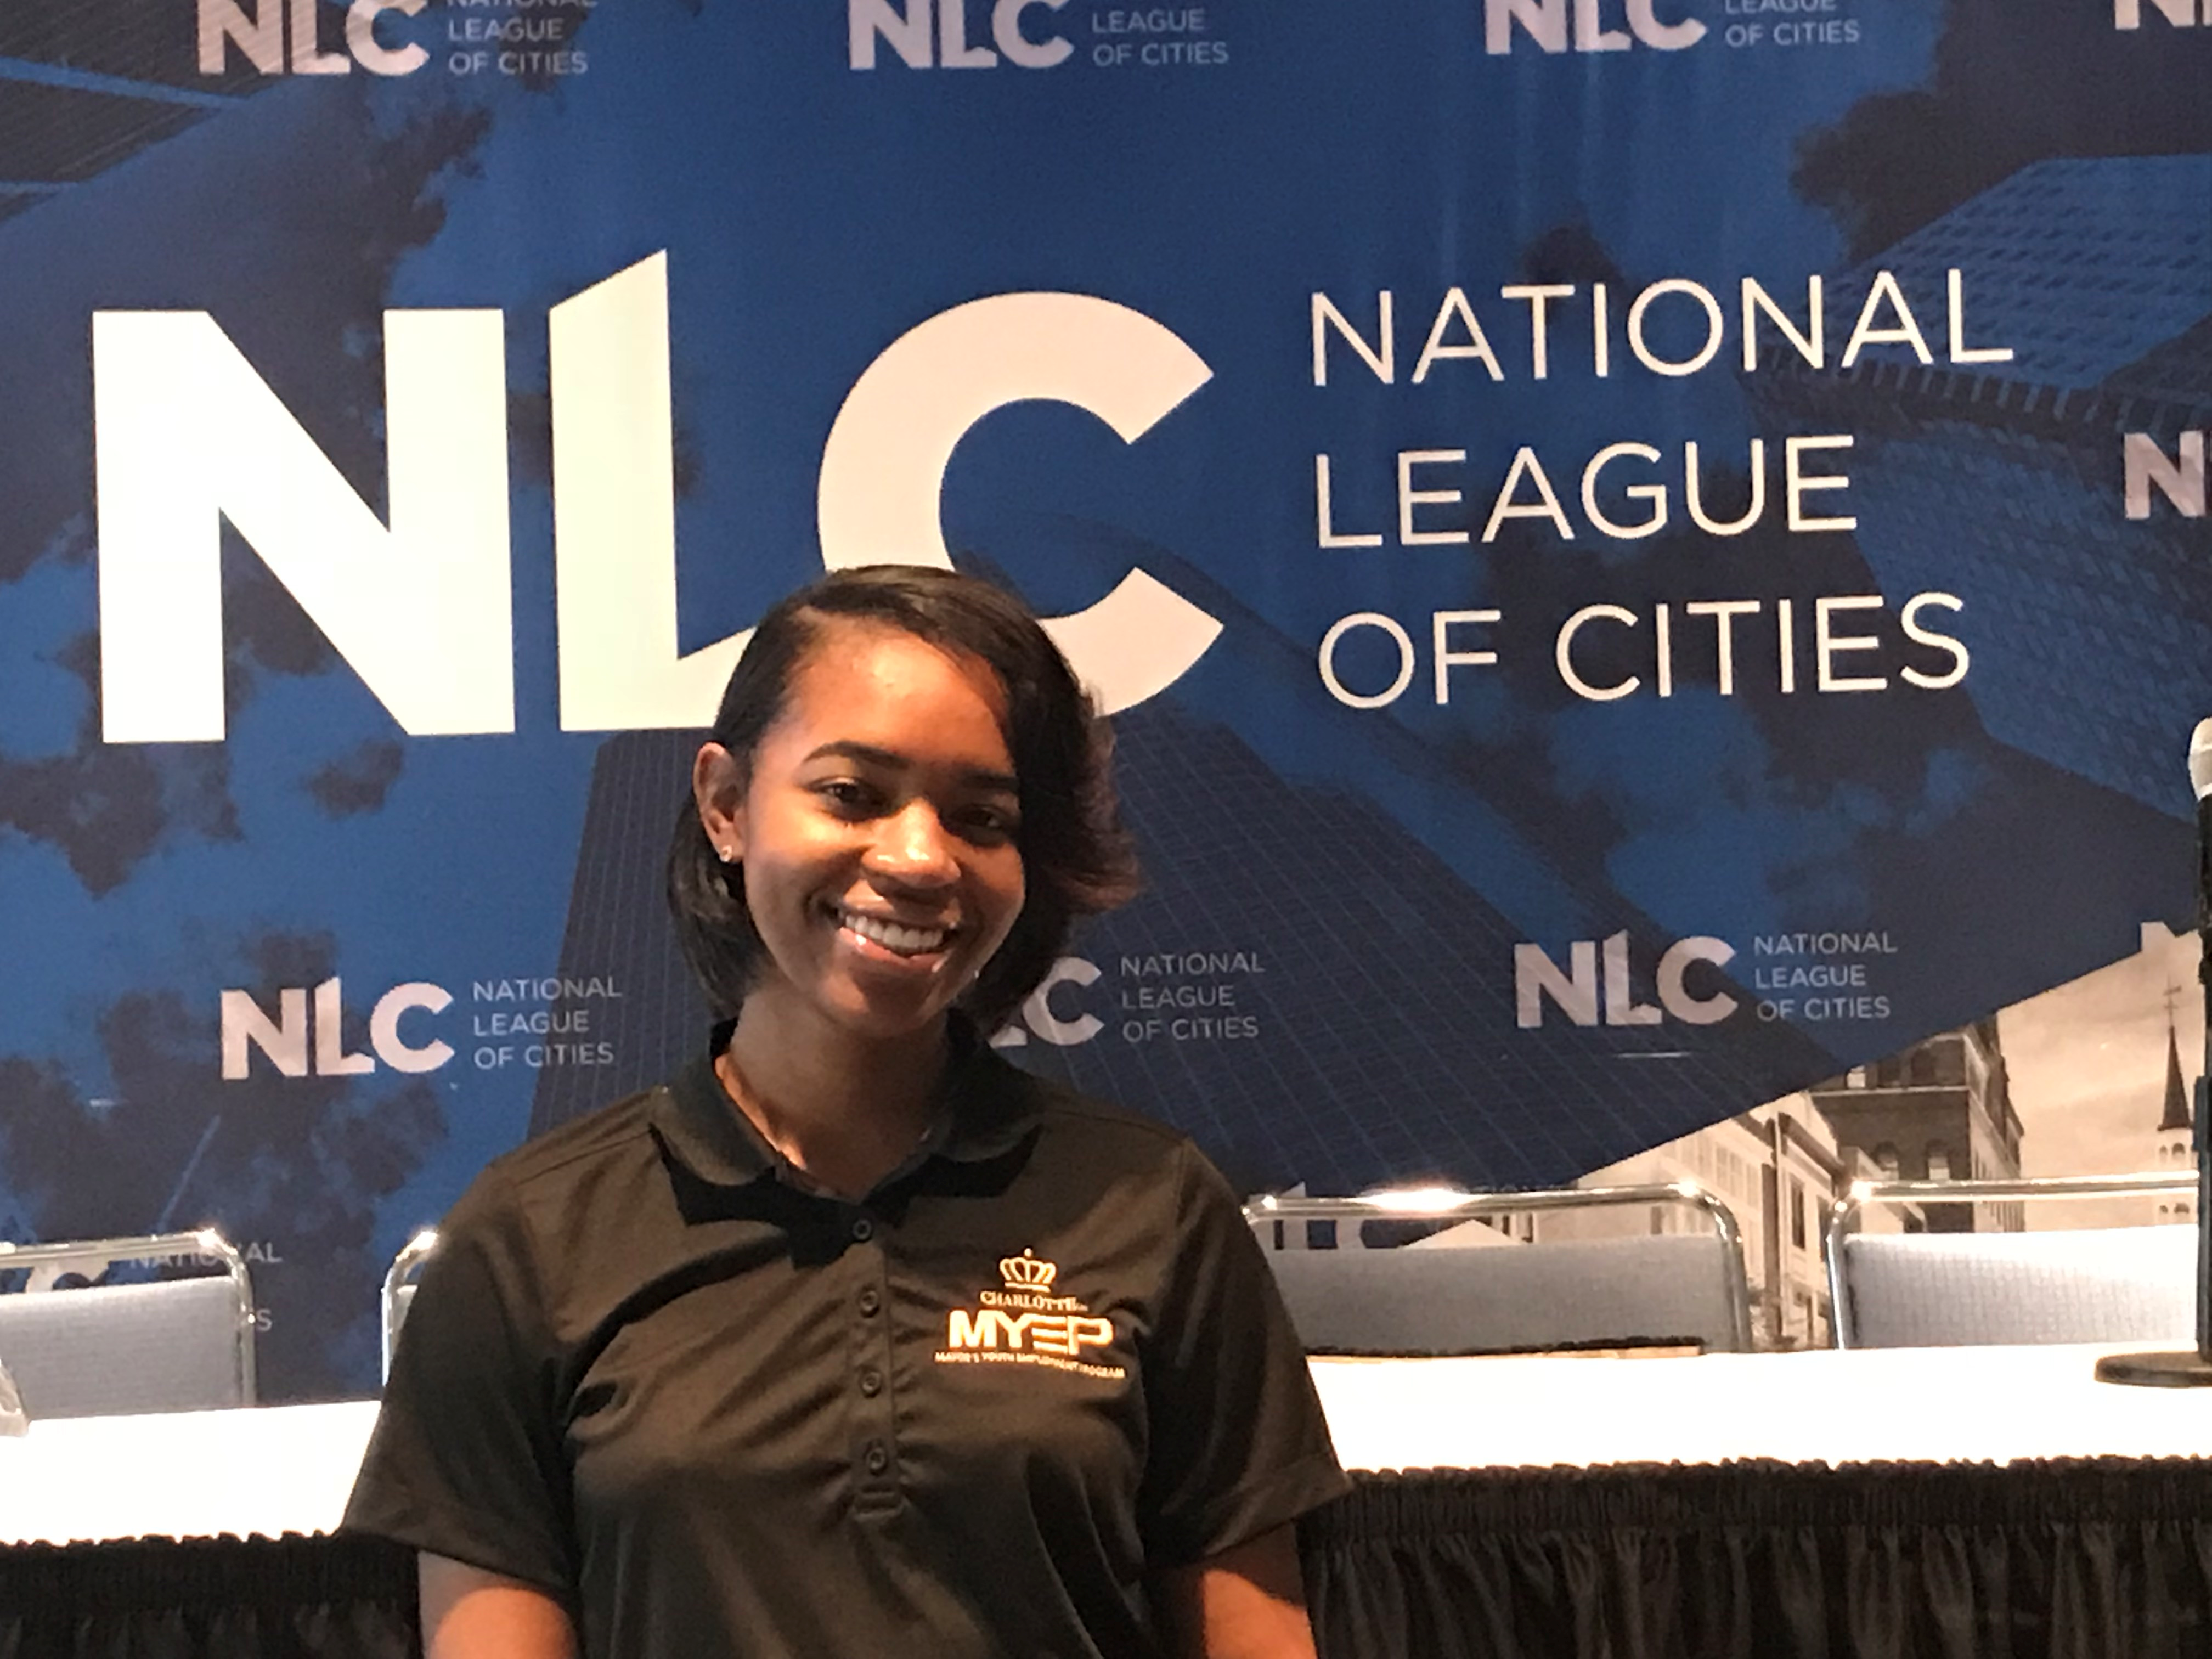 M Daniels at National League of Cities